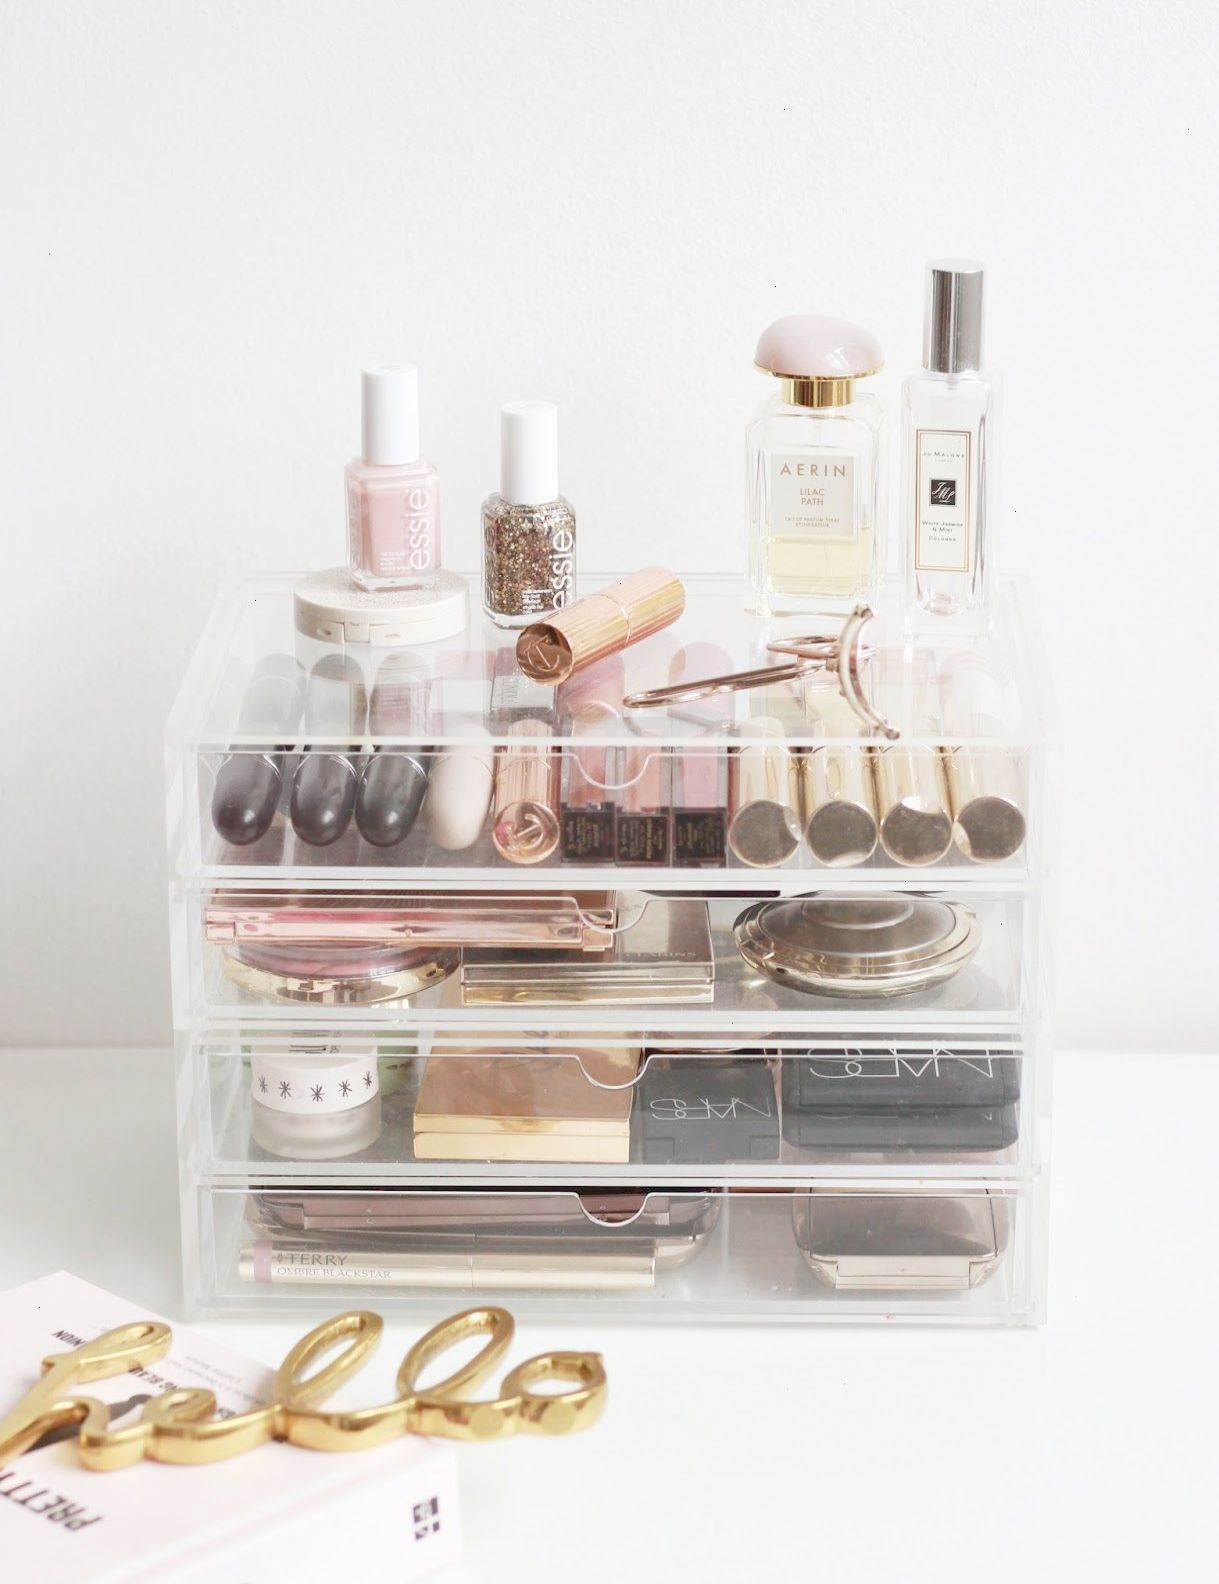 A Muji Makeup Storage Overhaul - Pint Sized Beauty